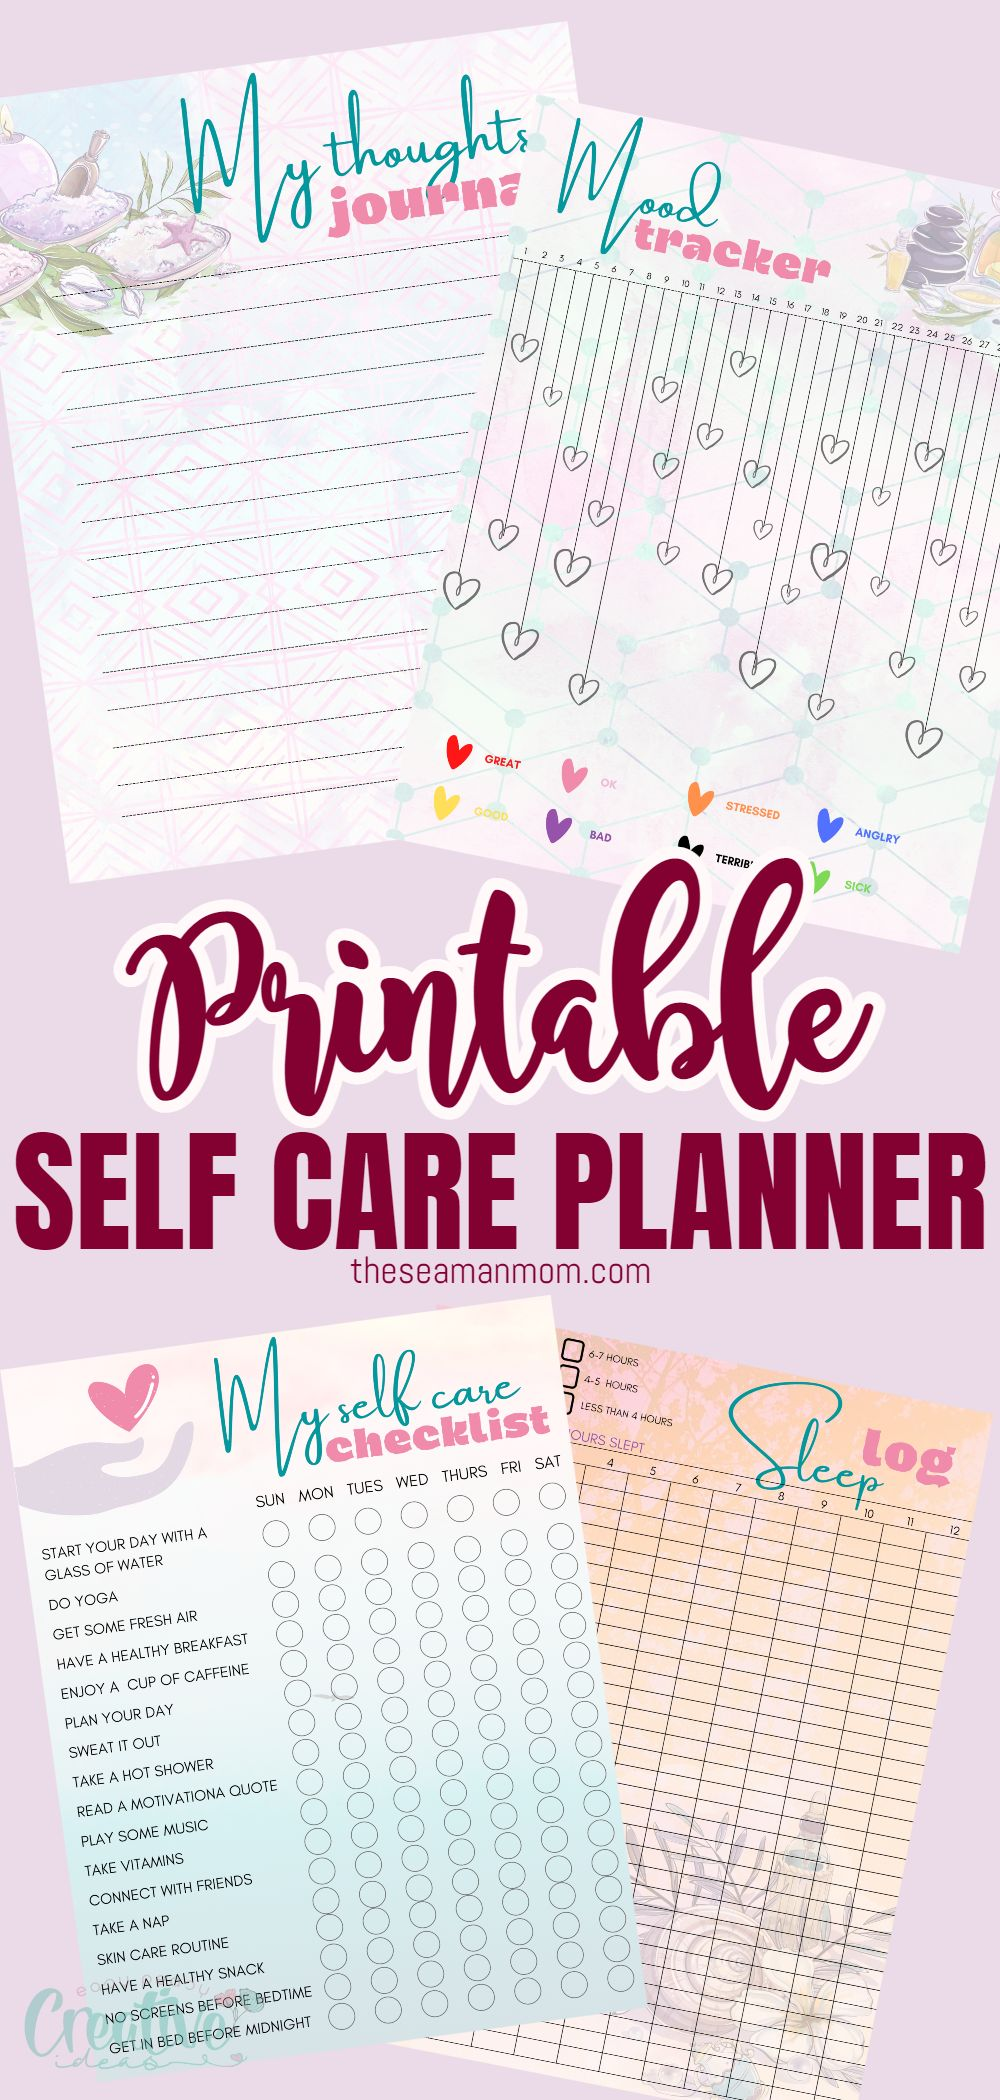 Instead of trying to work self-care into your busy schedule, why not make it a priority? With the help of this self care planner, you can keep track of all aspects of your health and well-being in one handy spot. via @petroneagu